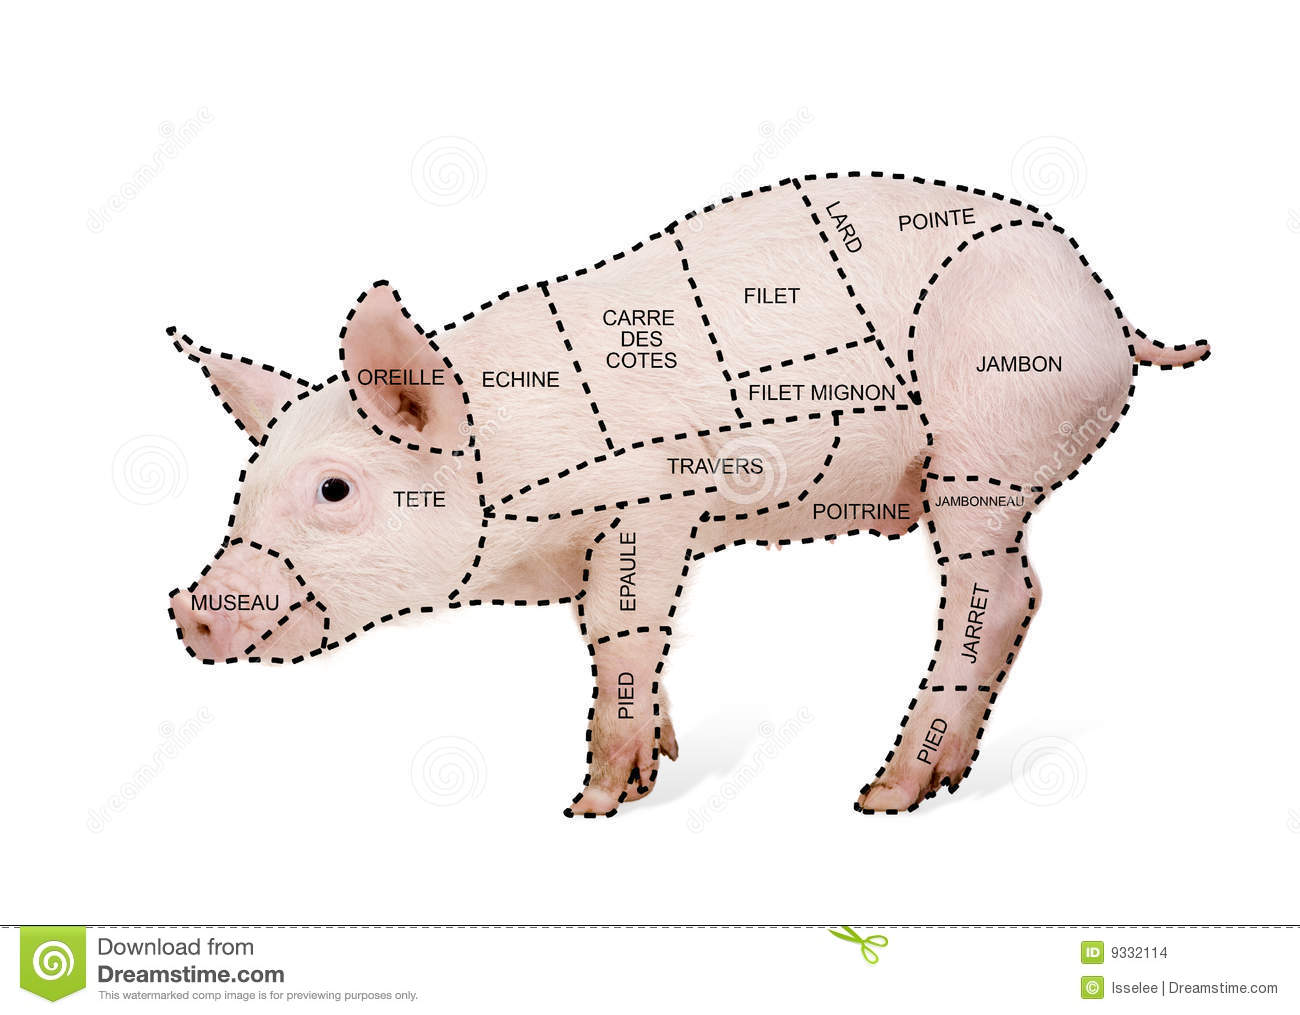 Pork cut chart poster in french in front of a white background.